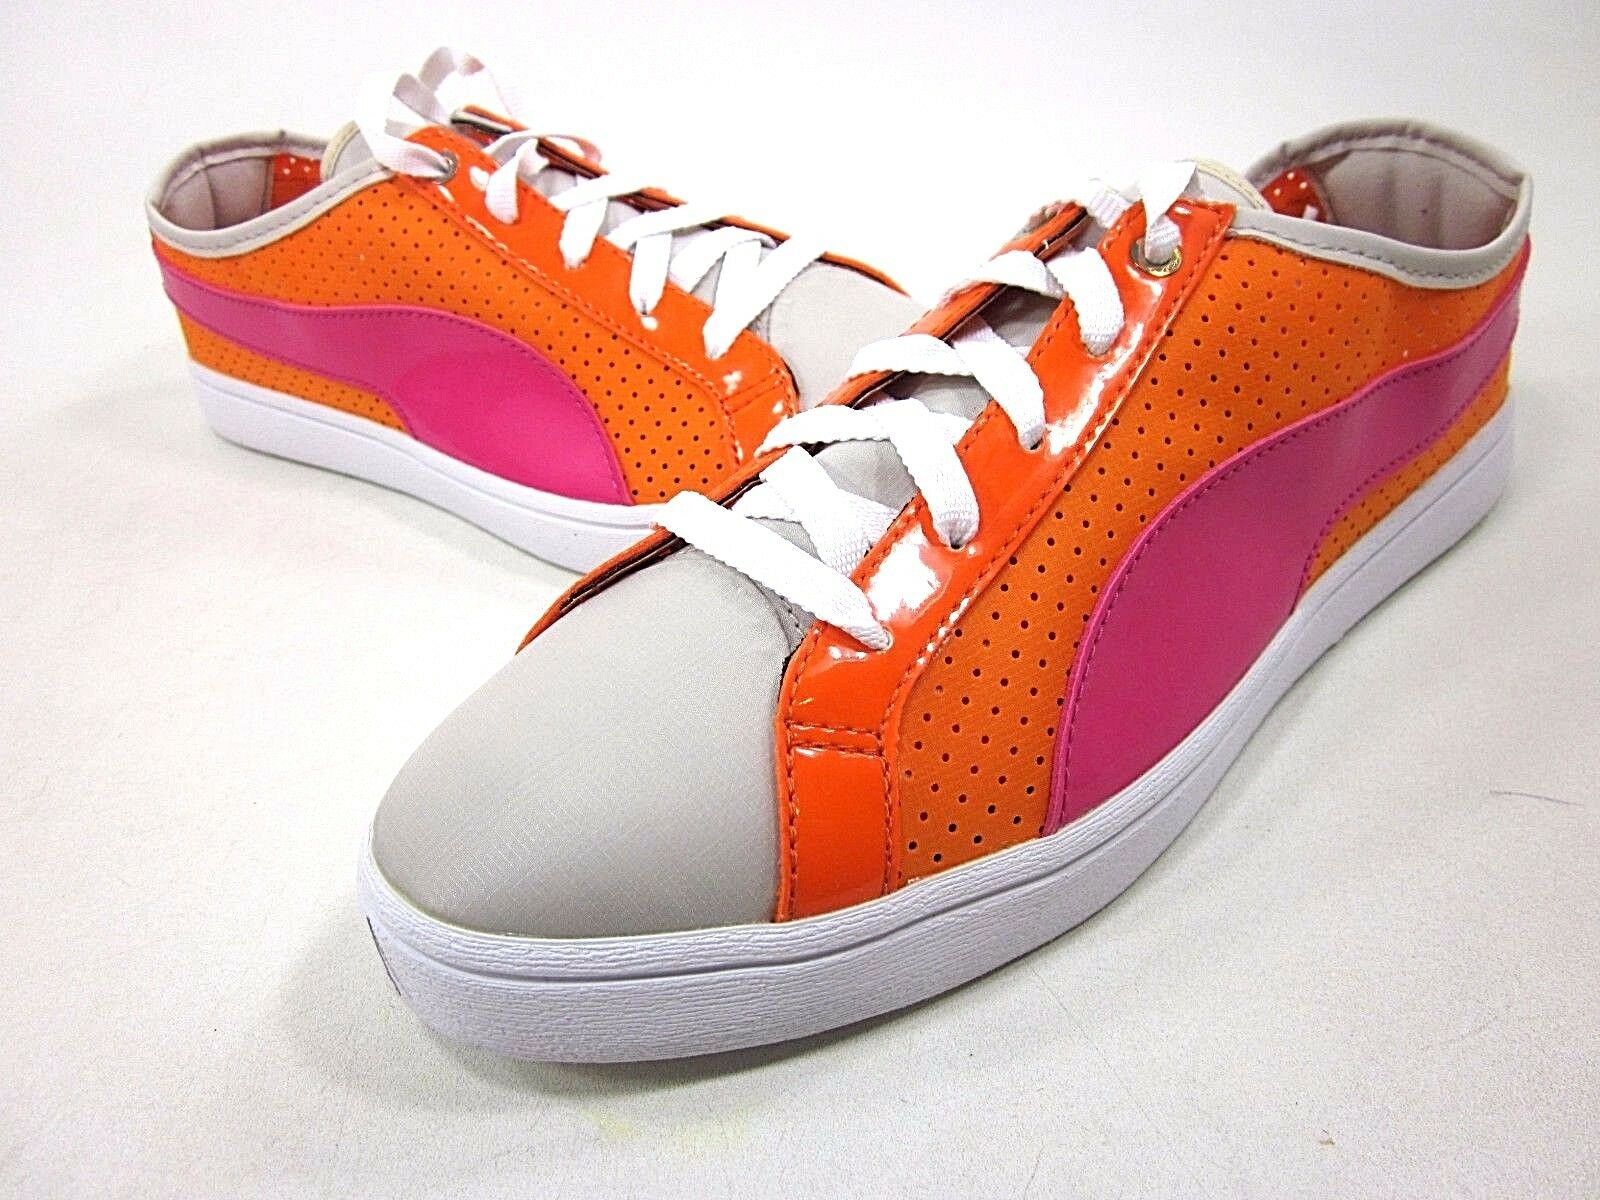 PUMA, KAI LO PERFORATED SHOE, WOMENS, ORANGE POPSICLE, US 8.5M, NEW WITHOUT BOX Comfortable and good-looking